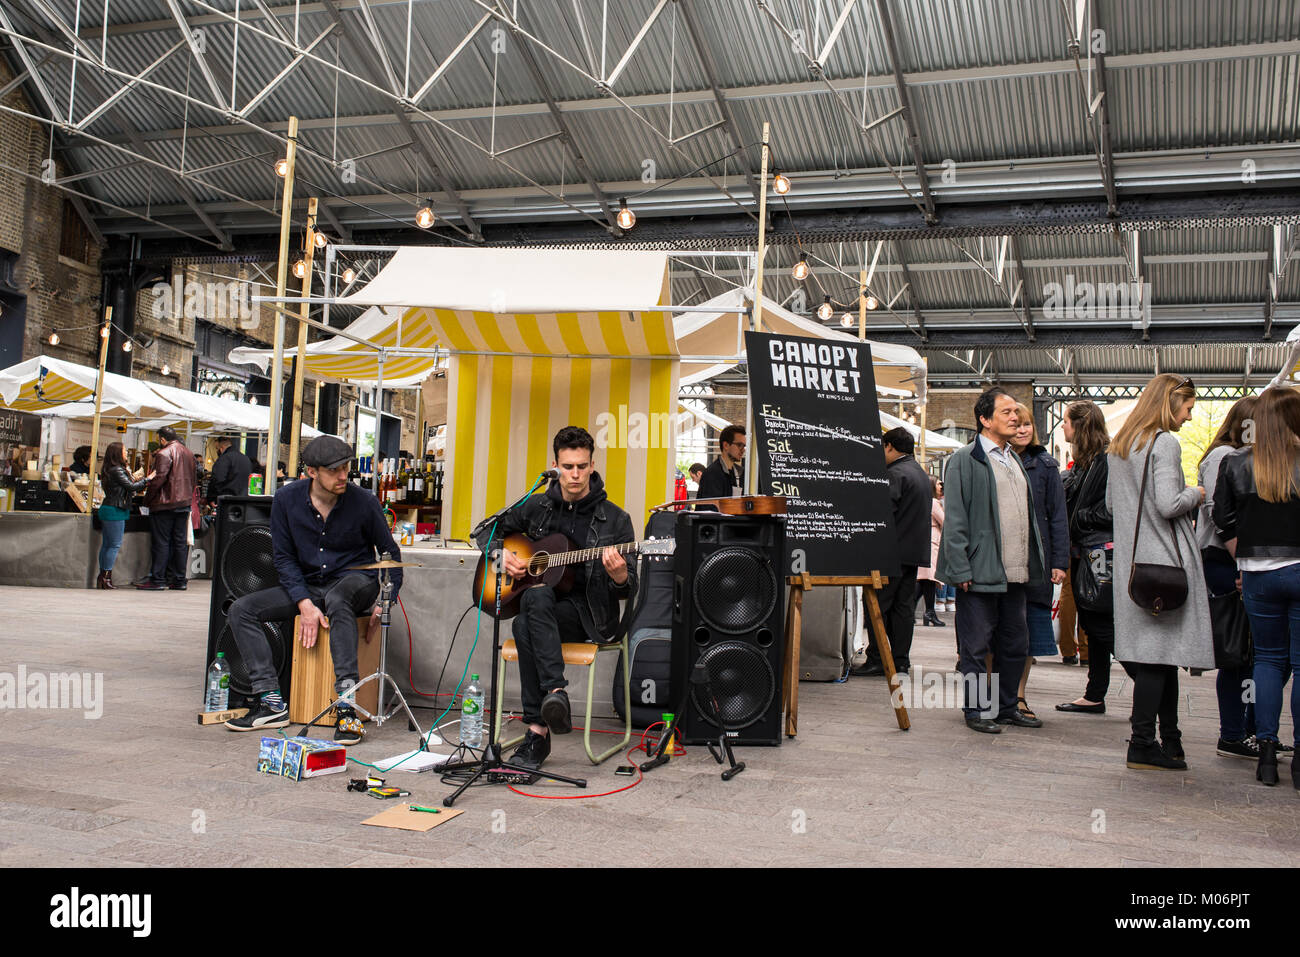 Musicians Playing Stock Photos   Musicians Playing Stock Images - Alamy 779957f36be